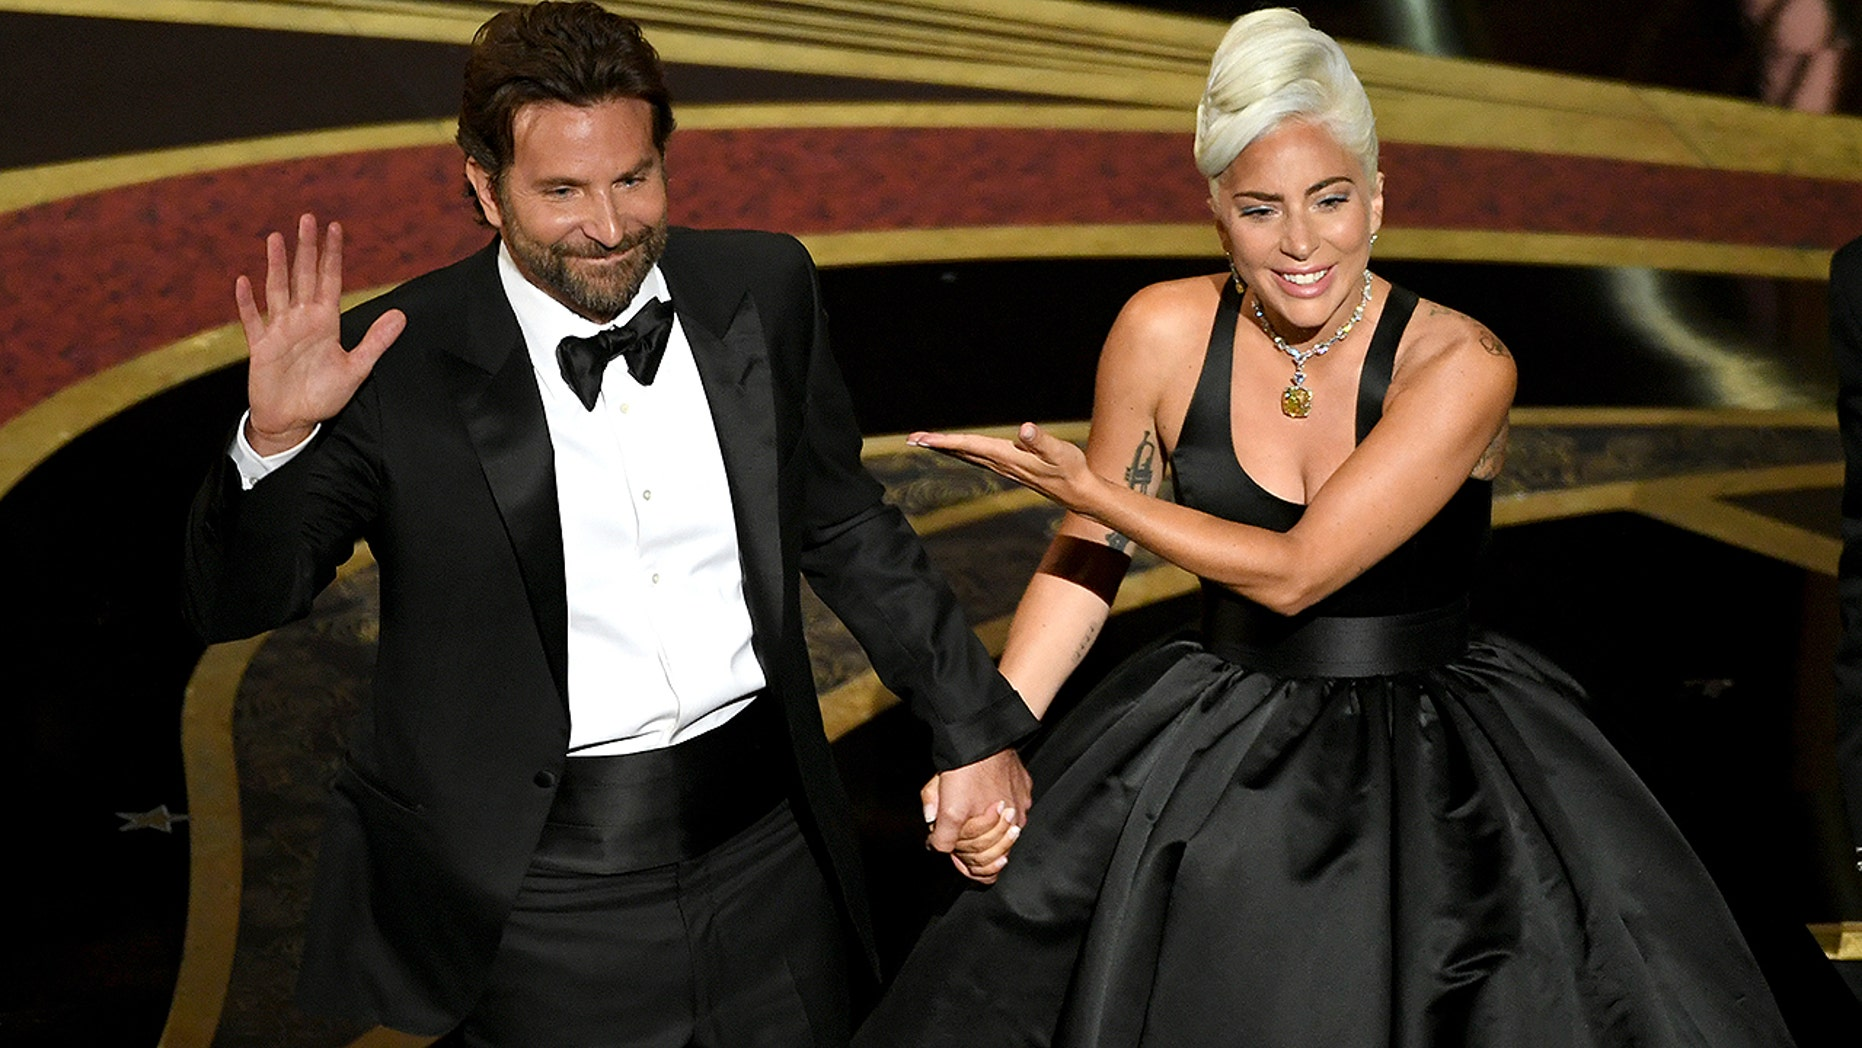 Lady Gaga and Bradley Cooper's romantic Oscars performance divides viewers""